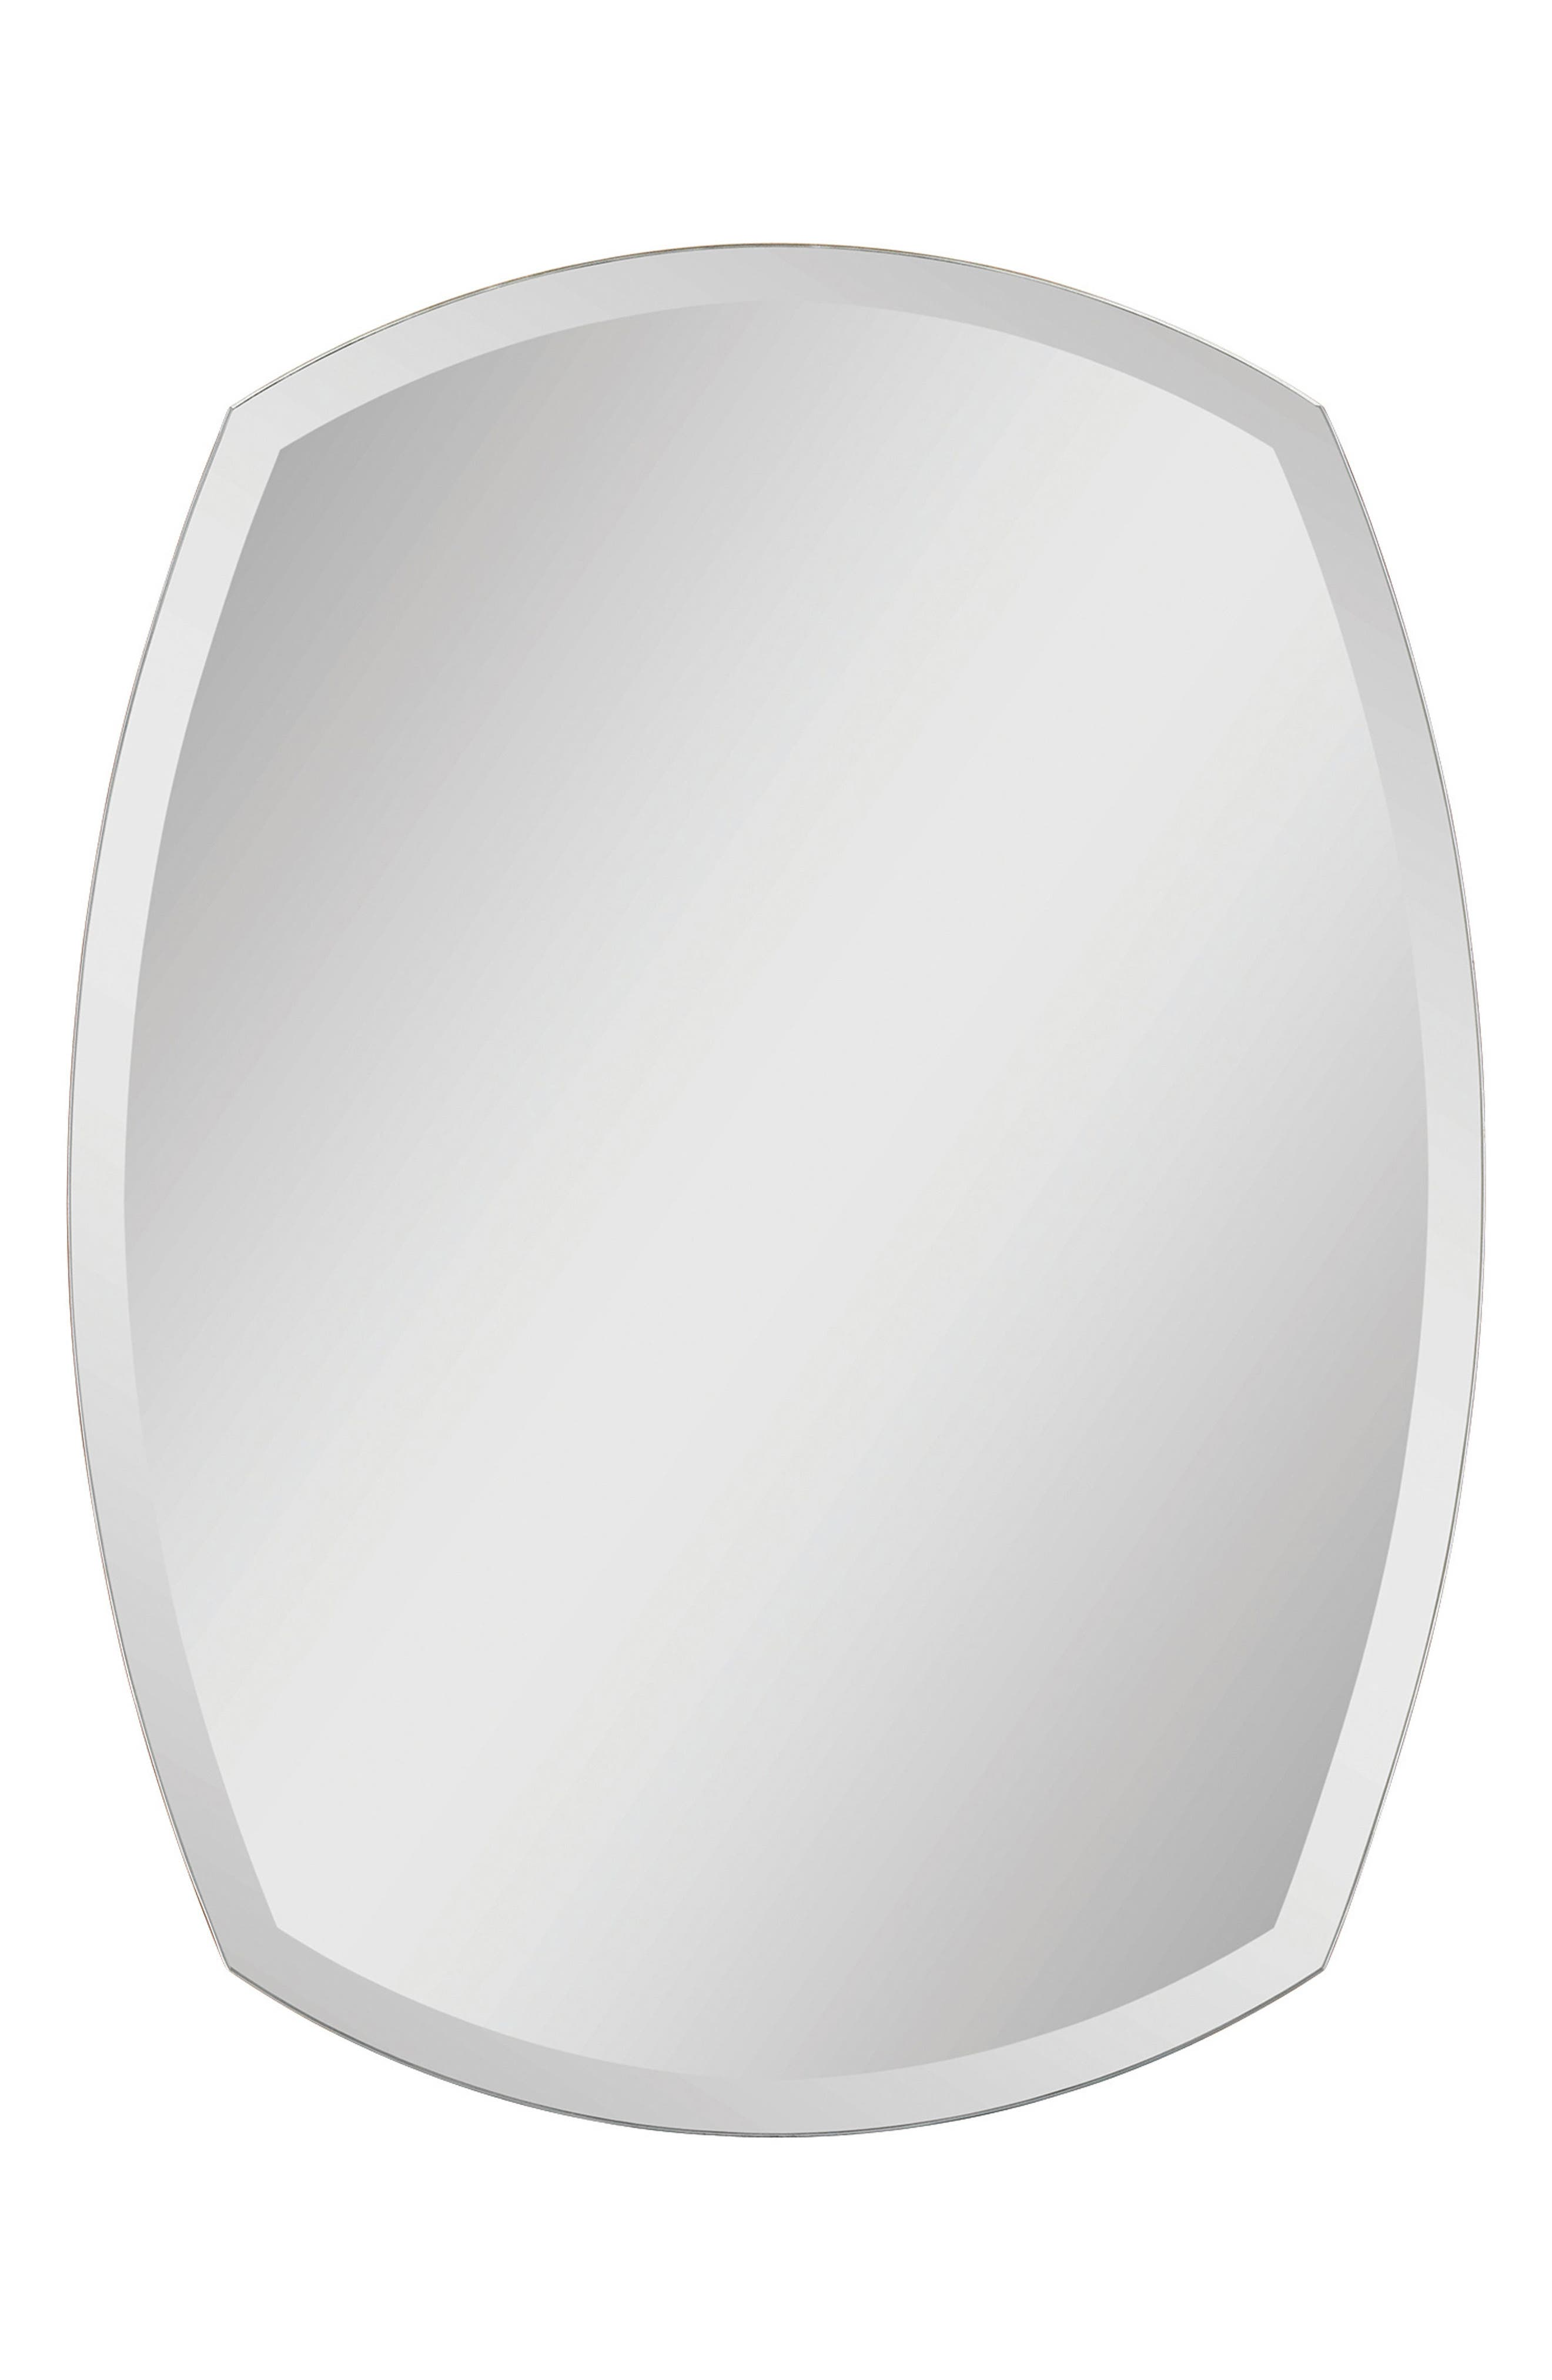 Spalding Mirror,                         Main,                         color, 100